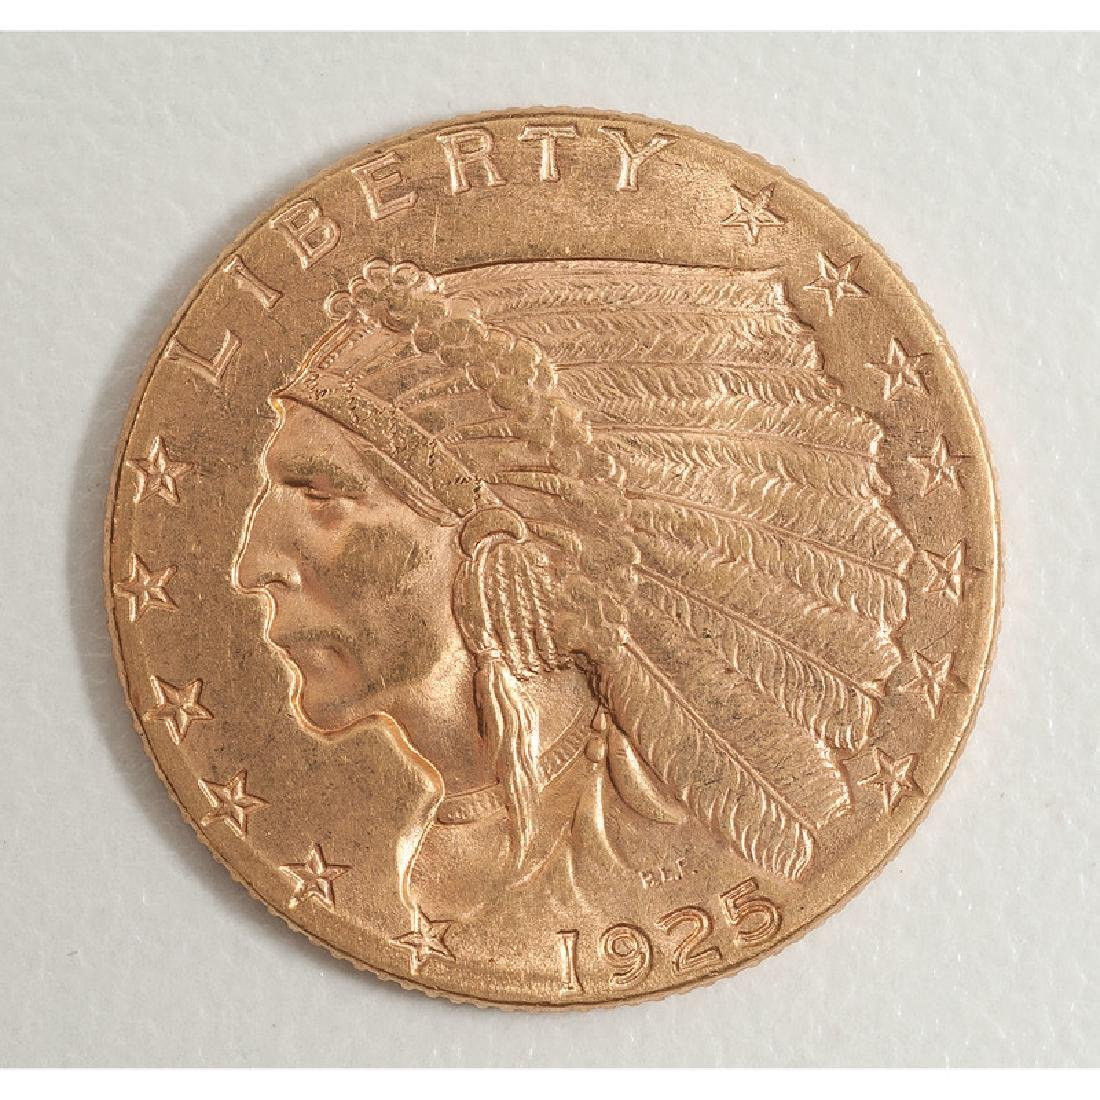 United States Indian Head $2.50 Coin 1925-D